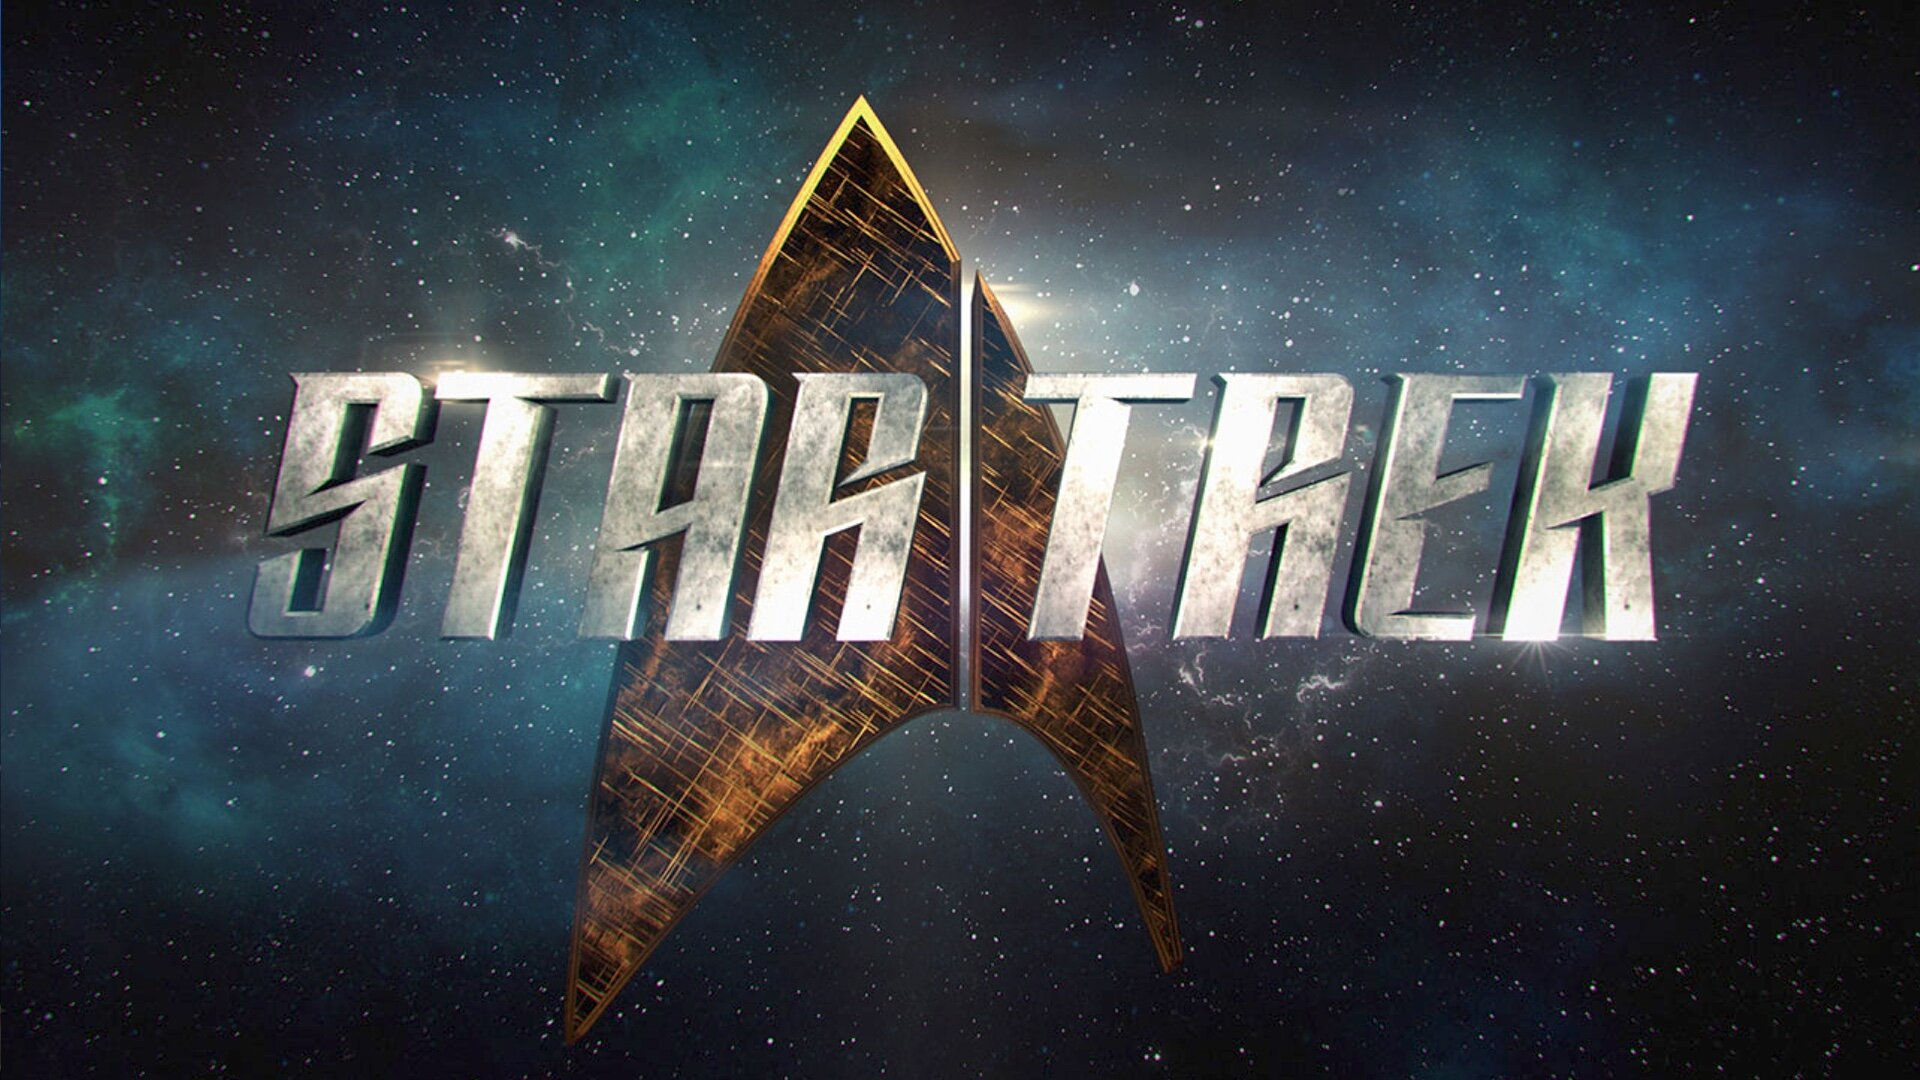 cinematic universes, Despite Star Trek's already existing universe, the idea of character-driven films can be a nice change for fans